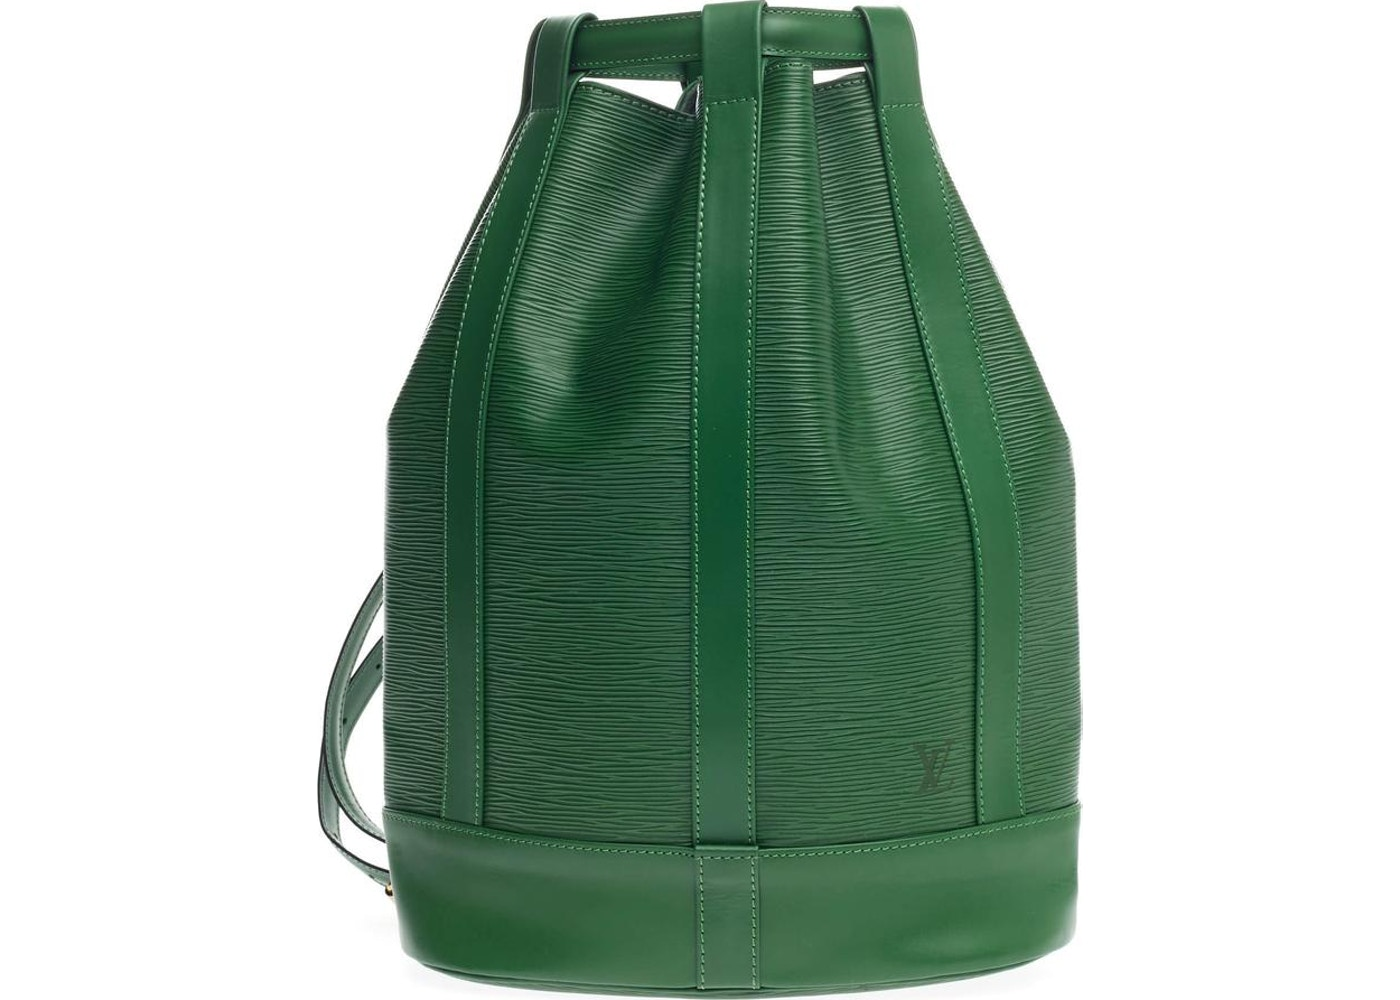 104cc8255880 Louis Vuitton Backpack Randonnee Epi GM Borneo Green. Epi GM Borneo Green